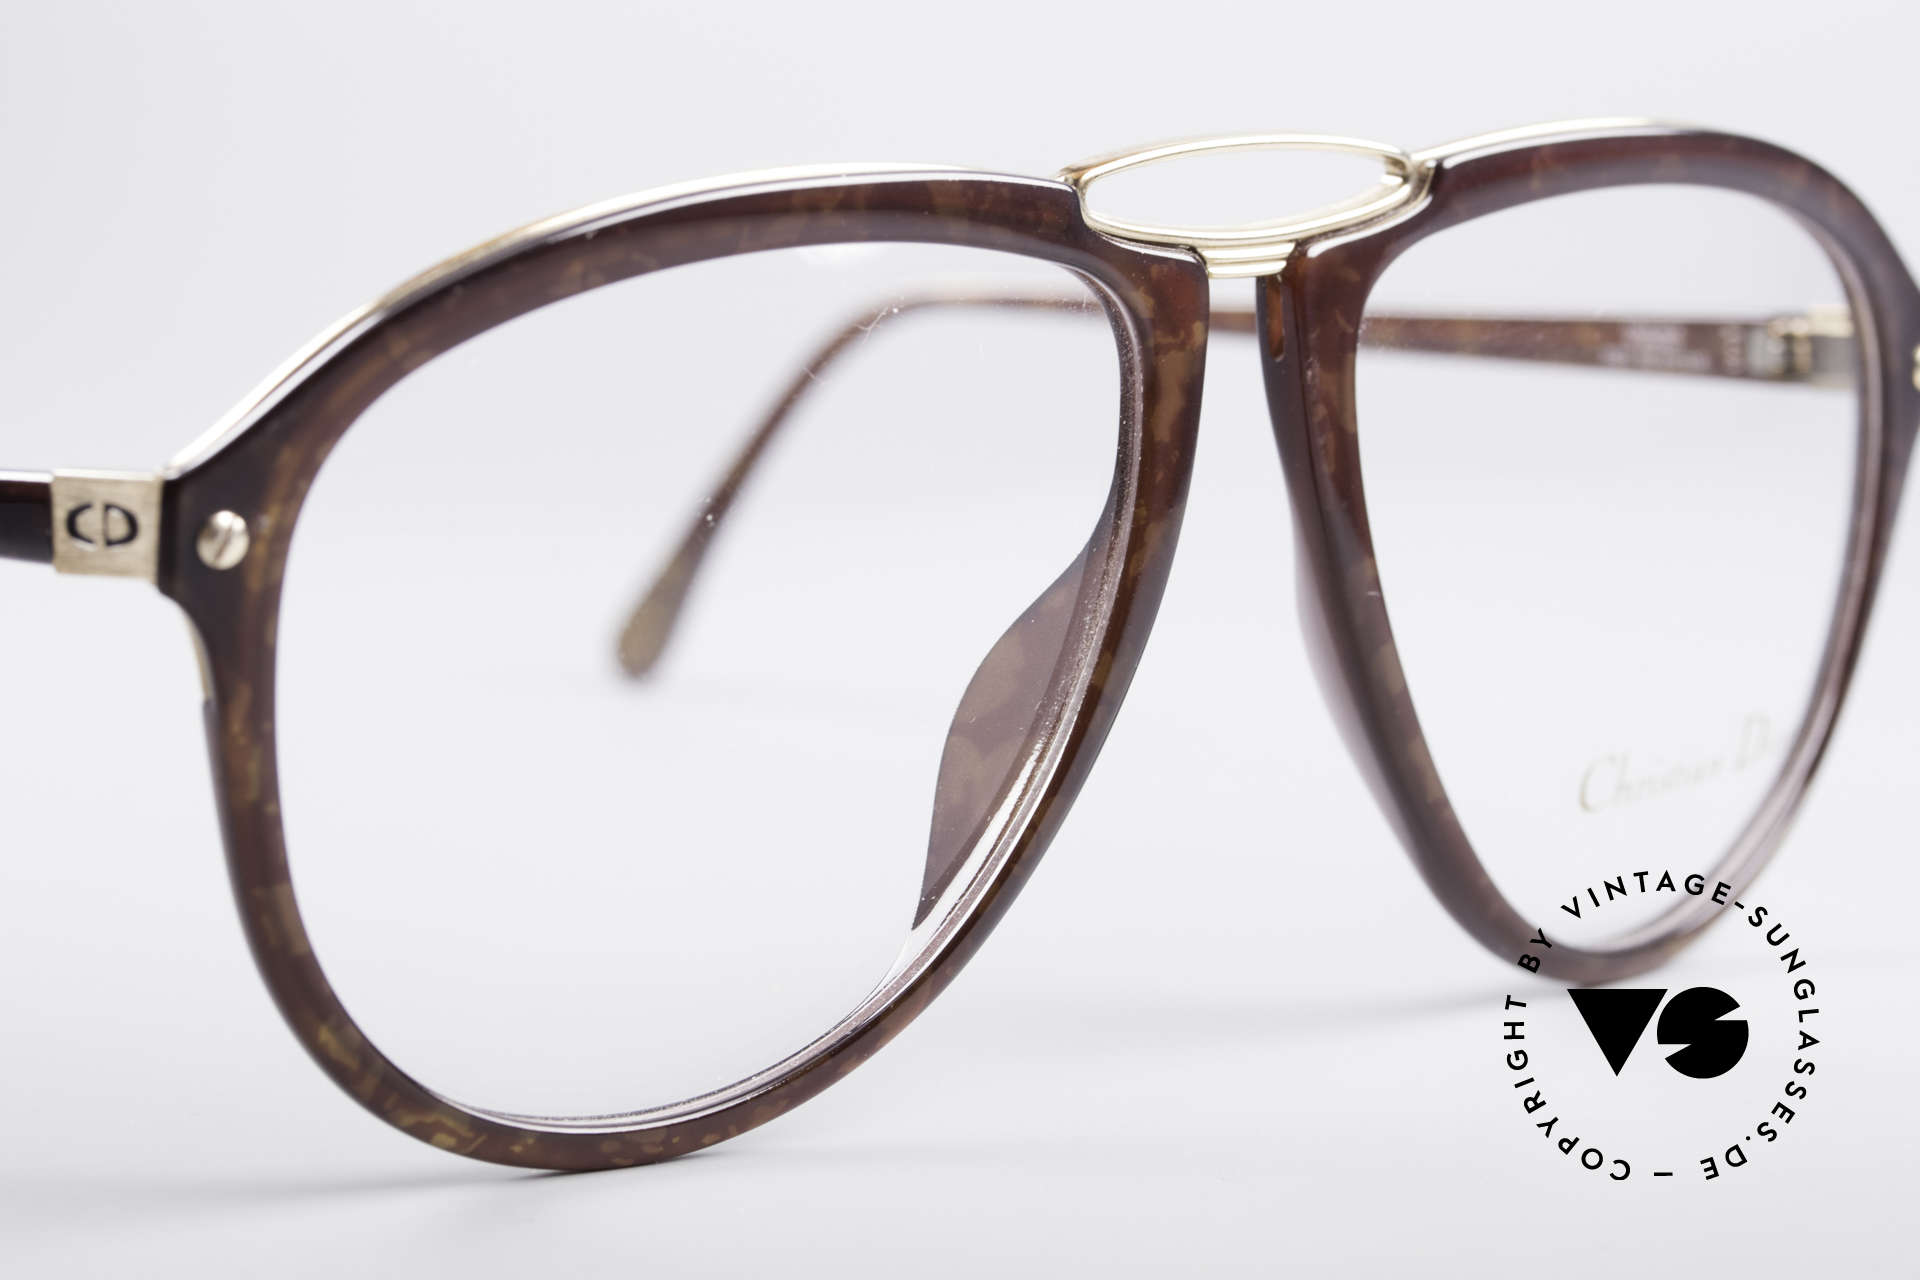 Christian Dior 2523 80's No Retro Glasses, new old stock (like all our vintage 80's Dior glasses), Made for Men